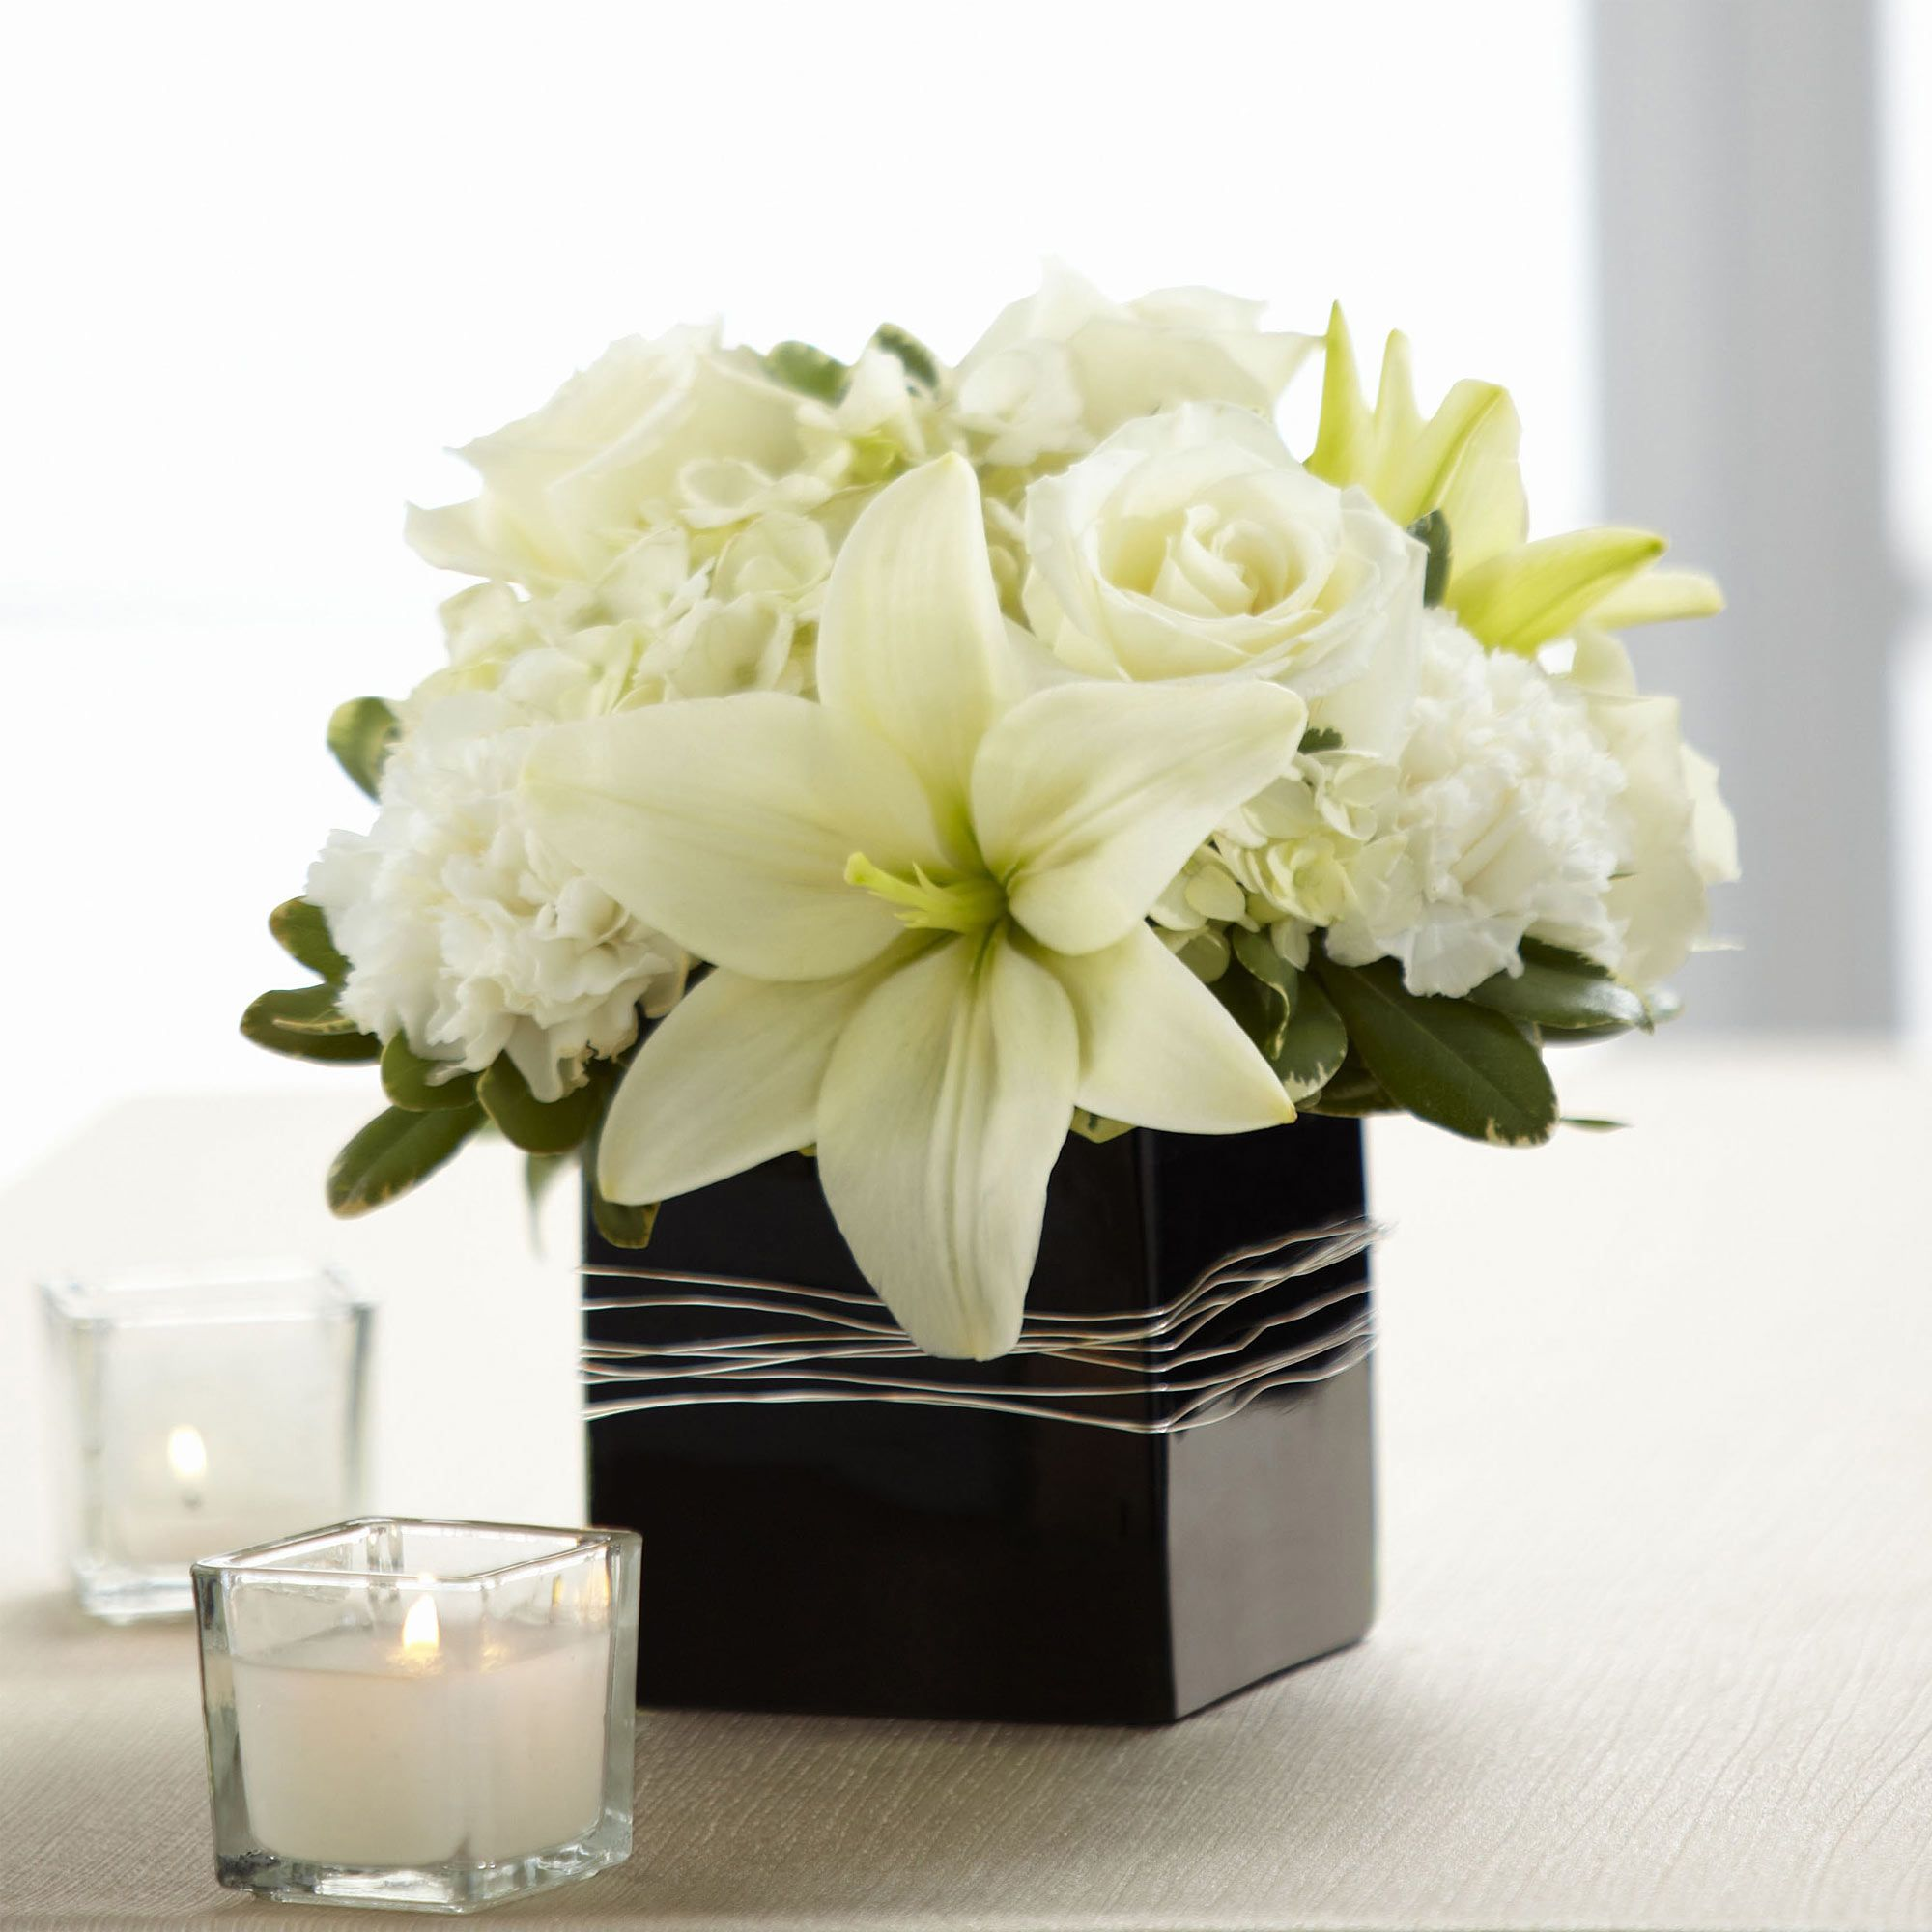 Decorate your home with this lavish arrangement containing white white roses asiatic lilies carnations and hydrangea are offset by lush greens and arranged in a designer black ceramic cube vase reviewsmspy